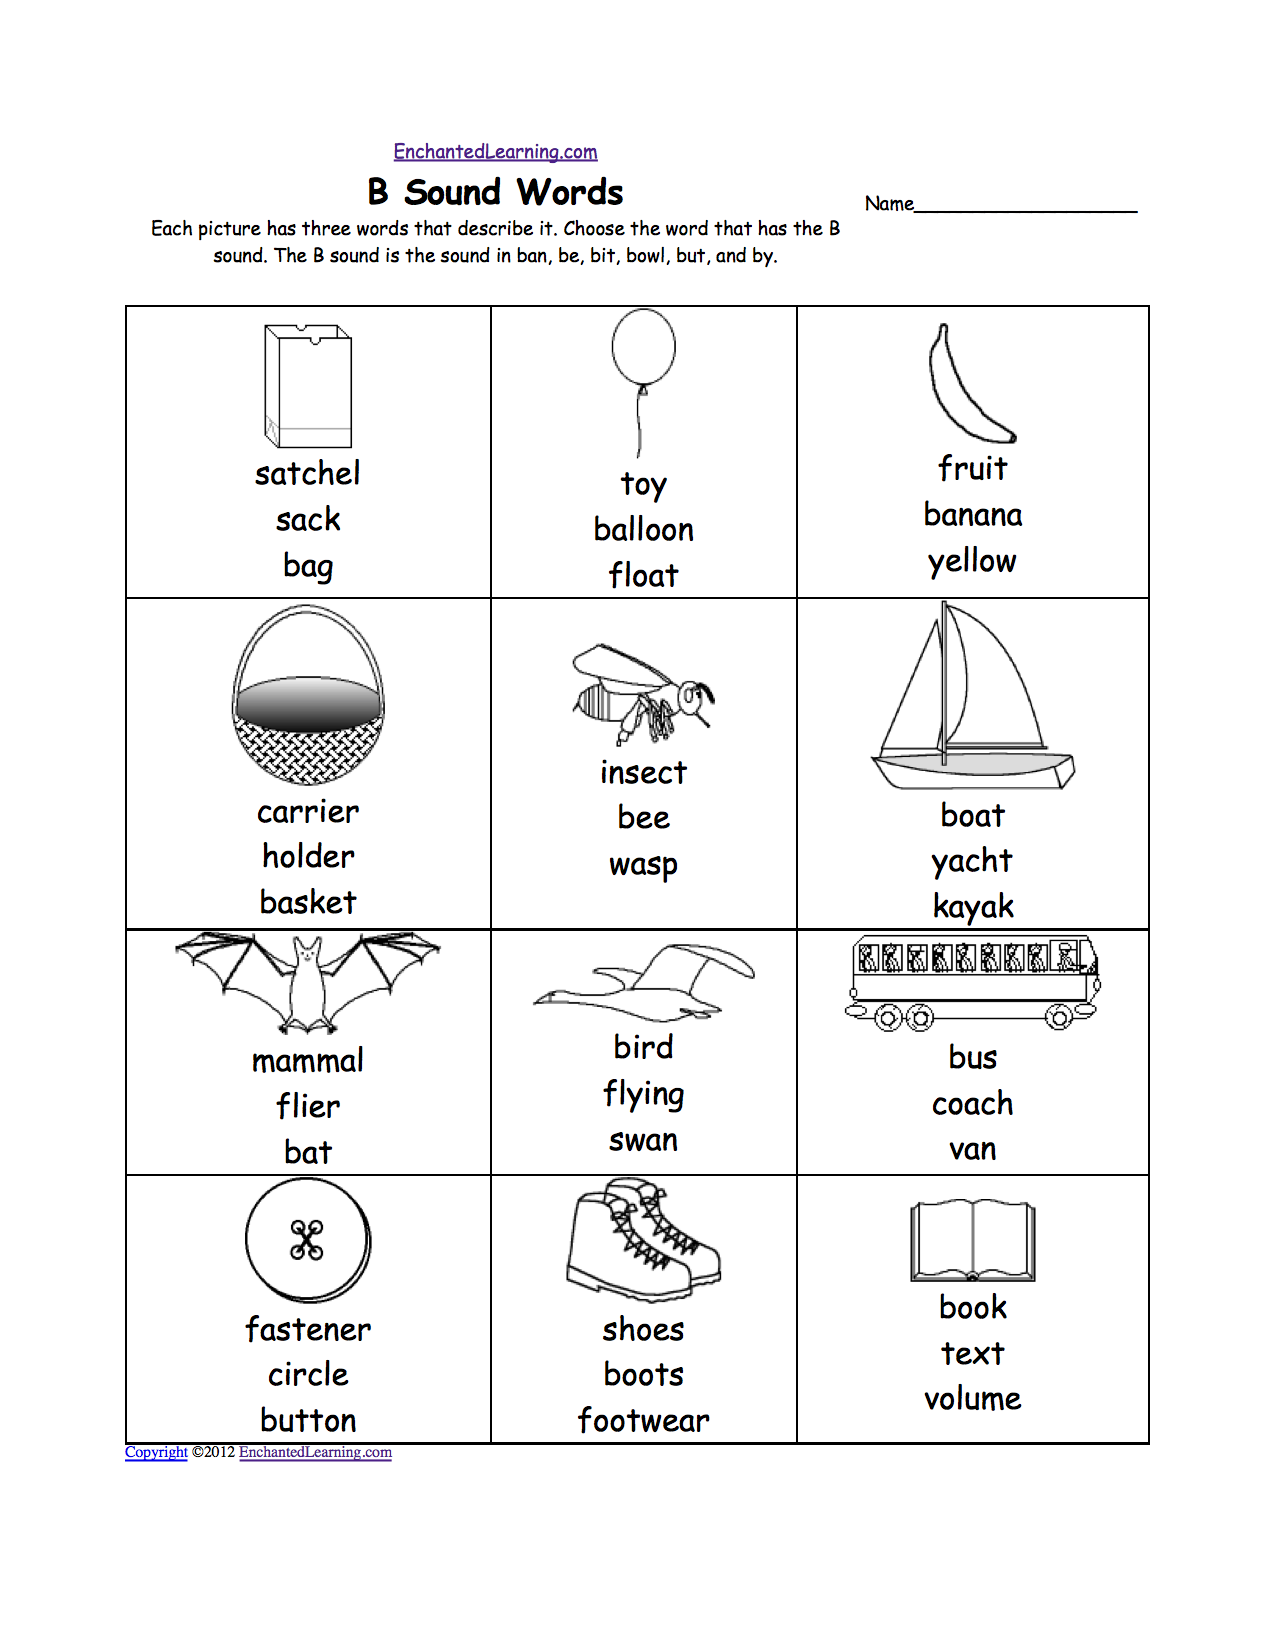 Proatmealus  Winning Phonics Worksheets Multiple Choice Worksheets To Print  With Foxy Quotbquot Sound Phonics Worksheet Multiple Choice Each Picture Has Three Words That Describe It Choose The Word That Has A Quotbquot Sound The Quotbquot Sound Is The Sound  With Enchanting Graph Paper Art Worksheets Also Weather Vocabulary Worksheets In Addition Types Of Numbers Worksheet And  Digit Addition Worksheets As Well As Budgeting Worksheets For Young Adults Additionally Free Health Worksheets From Enchantedlearningcom With Proatmealus  Foxy Phonics Worksheets Multiple Choice Worksheets To Print  With Enchanting Quotbquot Sound Phonics Worksheet Multiple Choice Each Picture Has Three Words That Describe It Choose The Word That Has A Quotbquot Sound The Quotbquot Sound Is The Sound  And Winning Graph Paper Art Worksheets Also Weather Vocabulary Worksheets In Addition Types Of Numbers Worksheet From Enchantedlearningcom